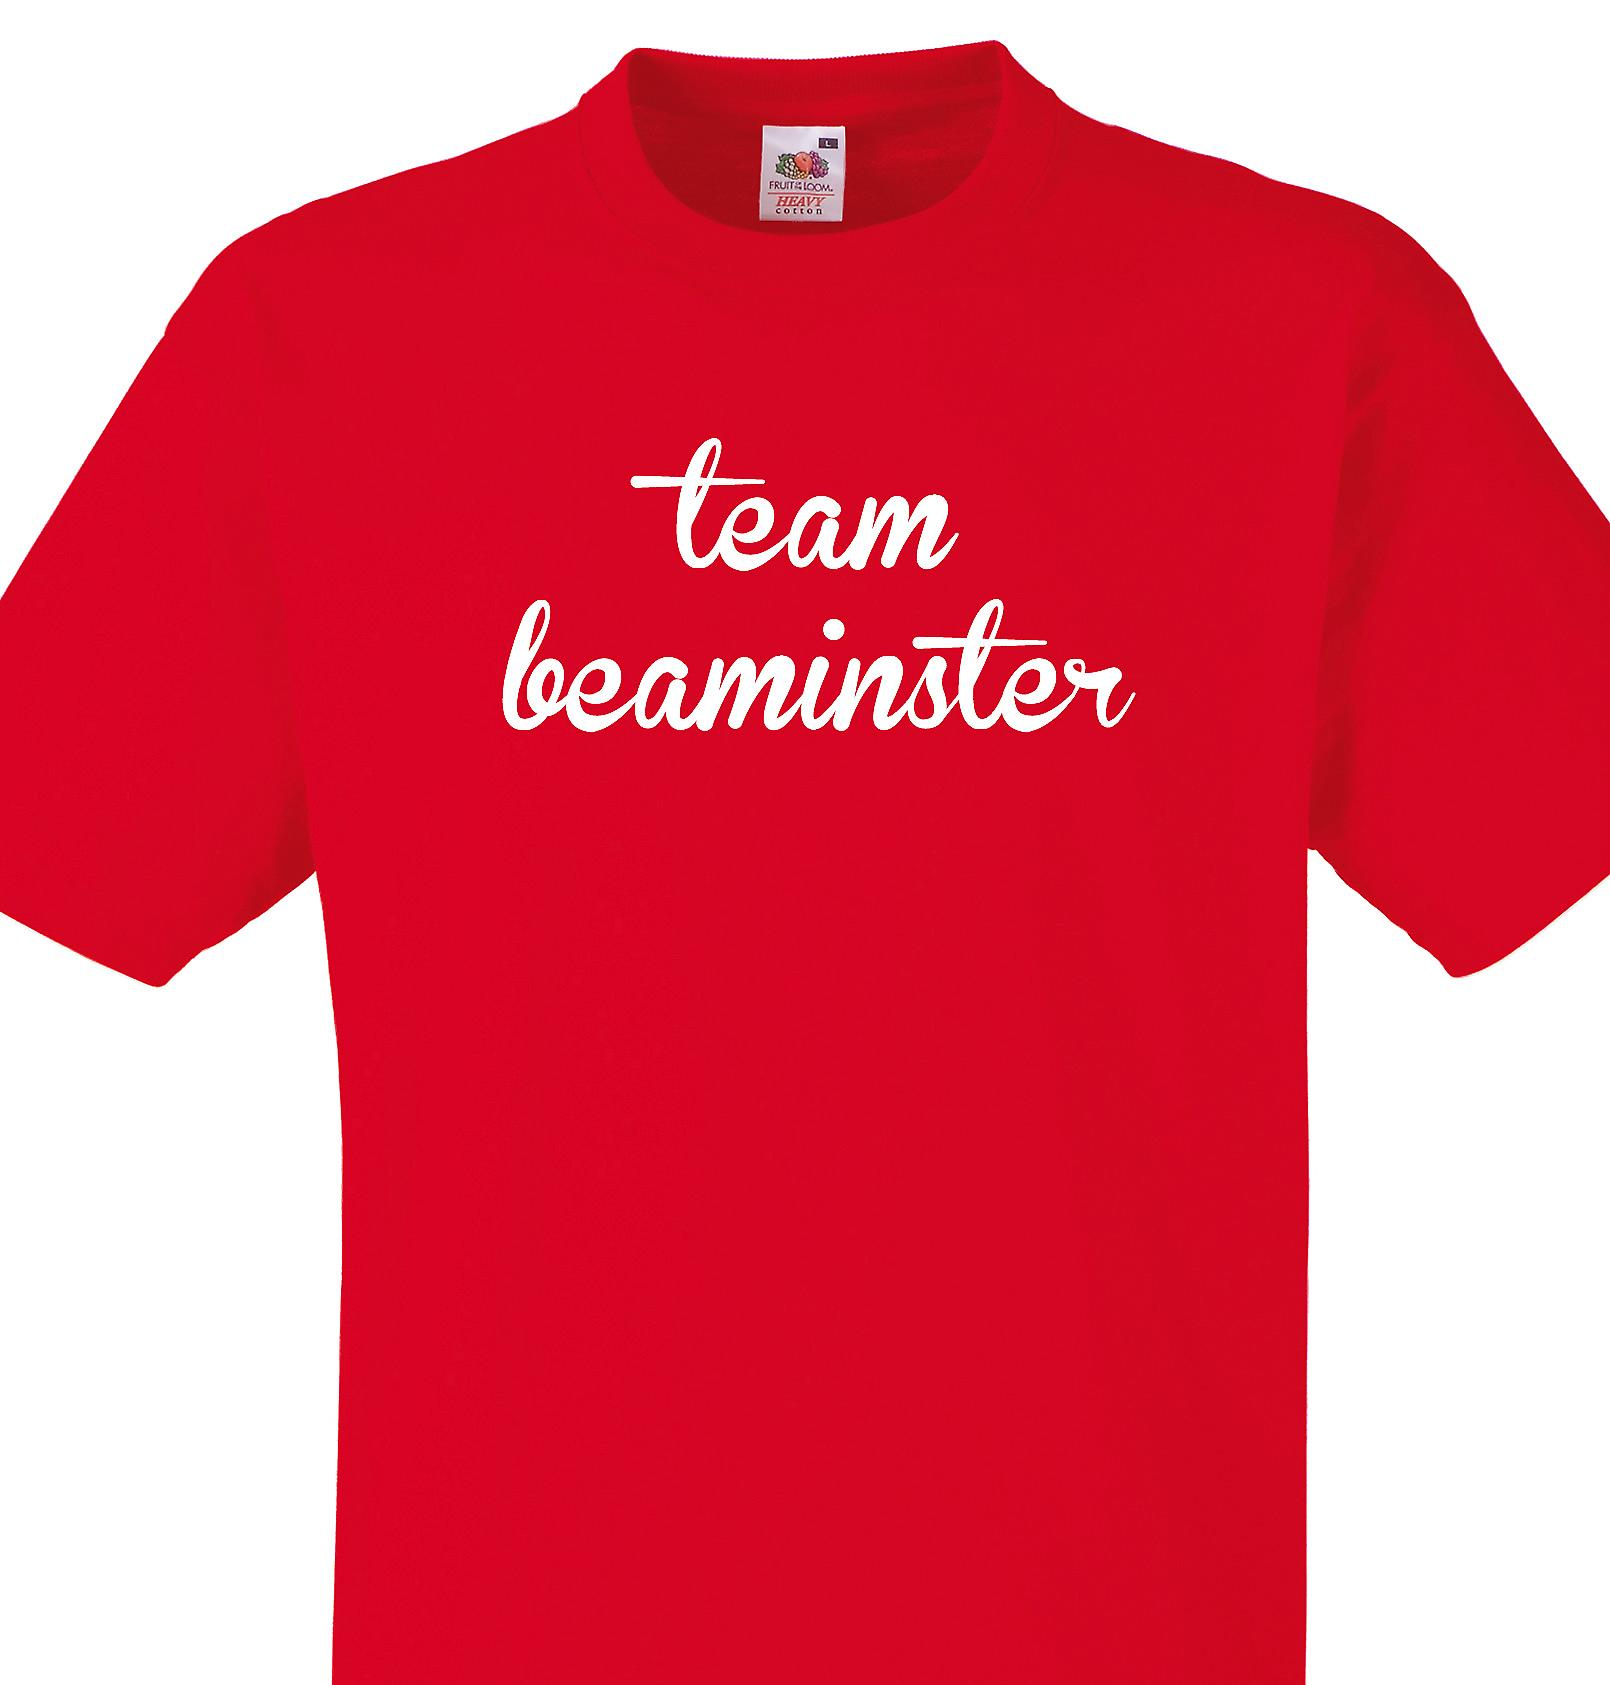 Team Beaminster Red T shirt